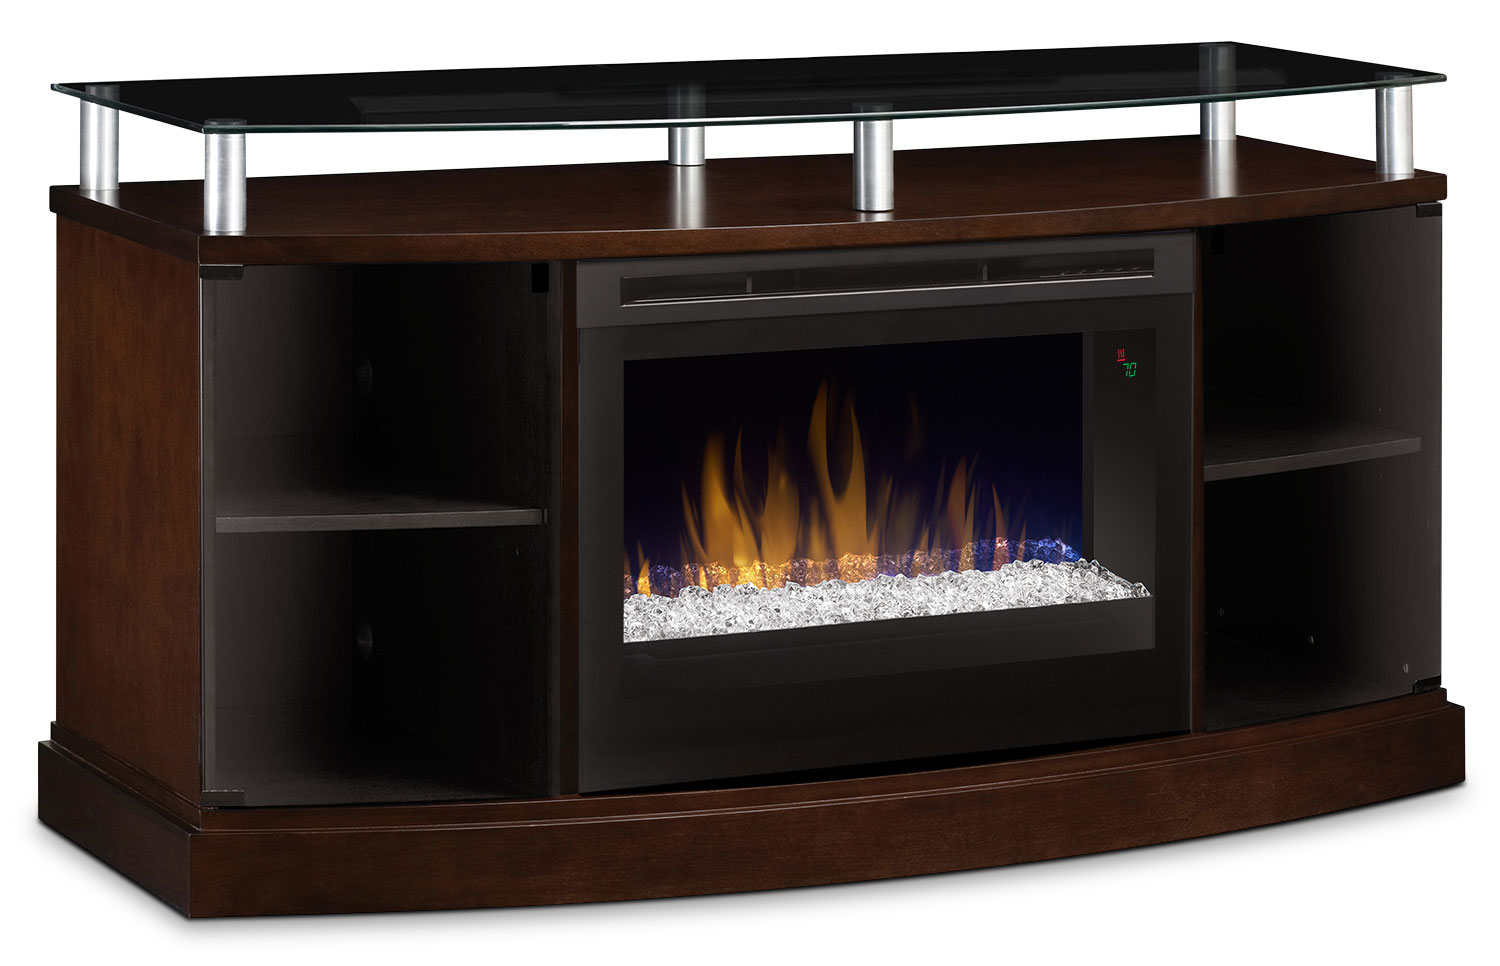 "Windham 53"" TV Stand with Glass Ember Firebox – Mocha"